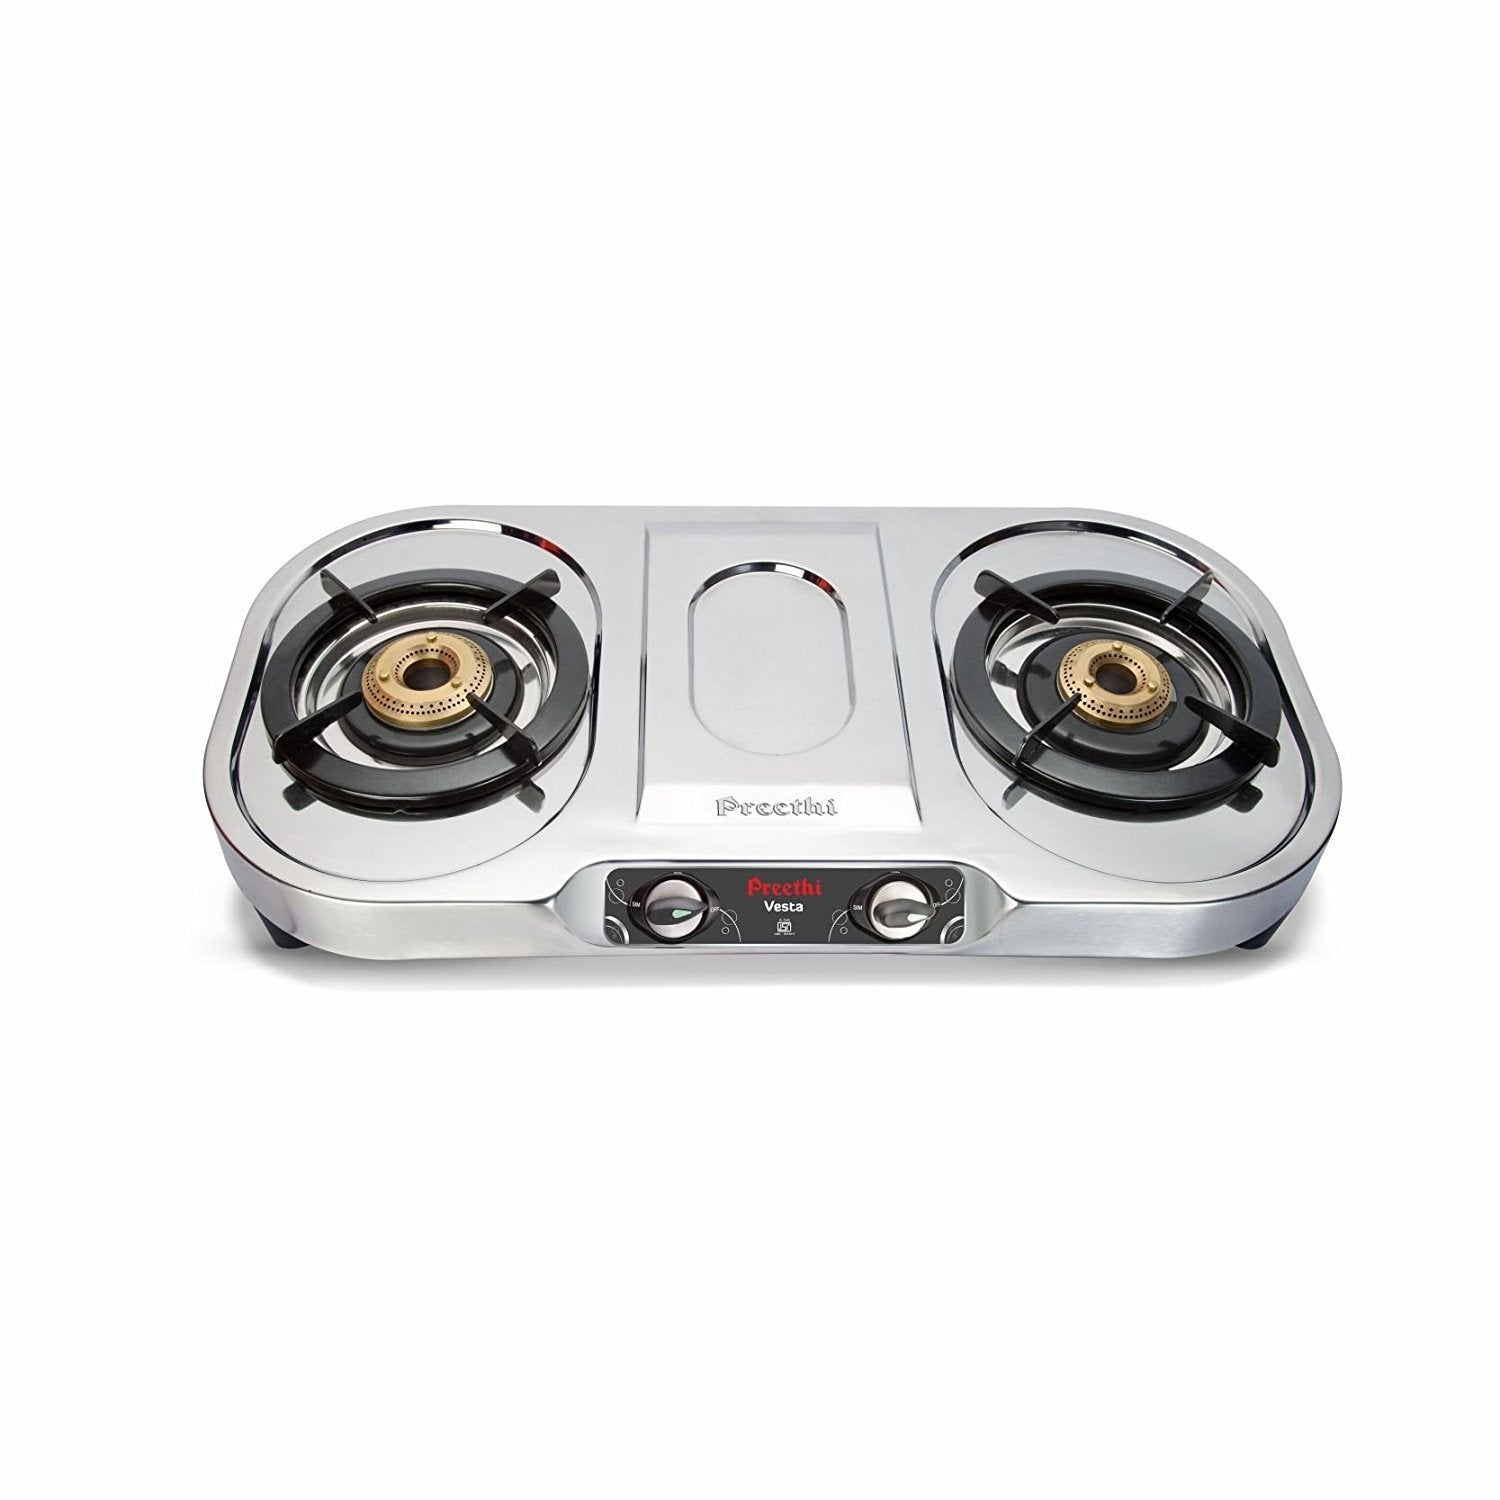 Preethi Vesta Stainless Steel 2-Burner Gas Stove get best offers deals free and coupons online at buythevalue.in